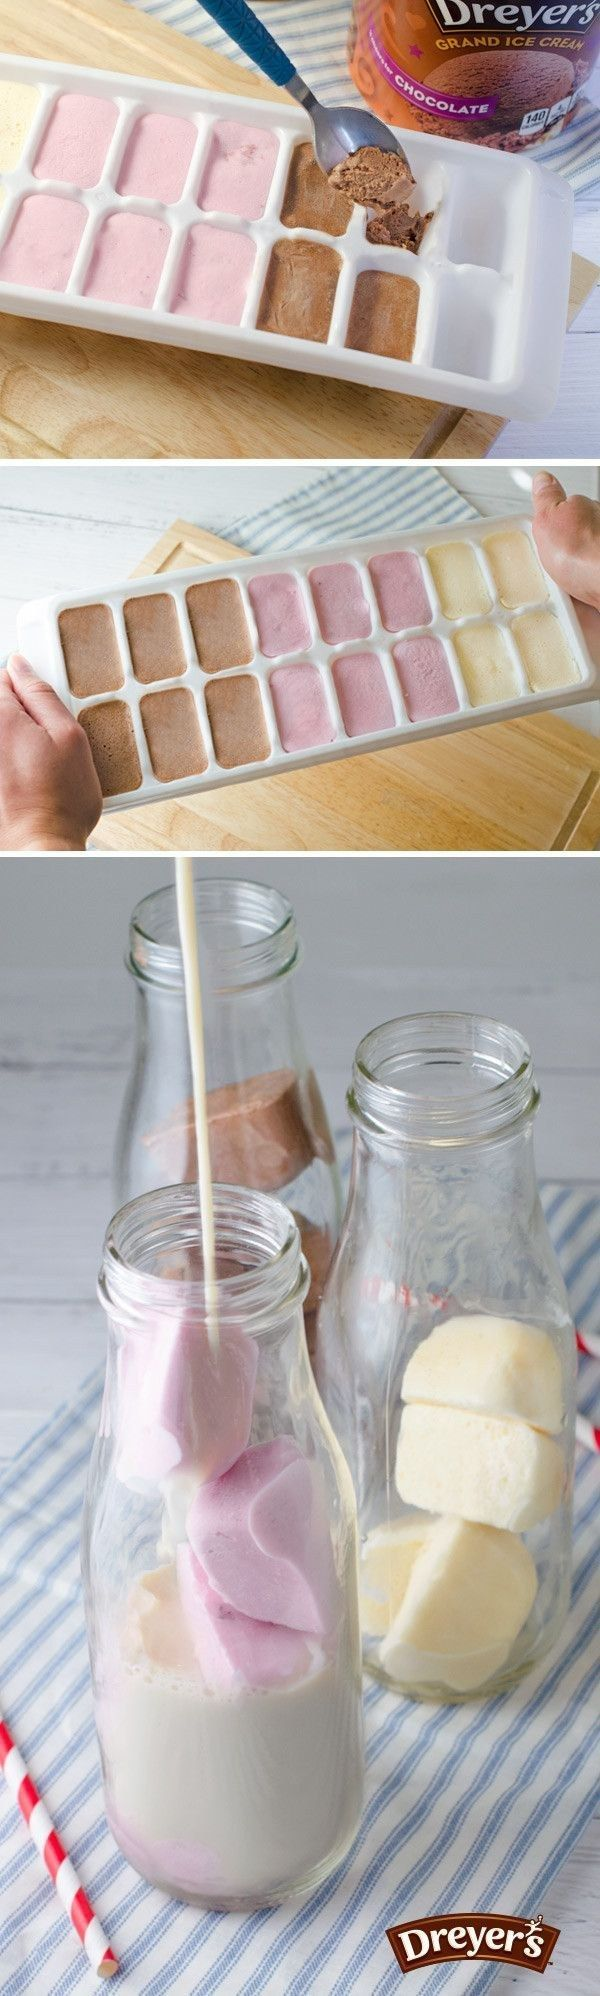 Make ice cream cubes to add to milk and floats. | 29 Next-Level Ice Cream Treats You Can Make At Home This Summer